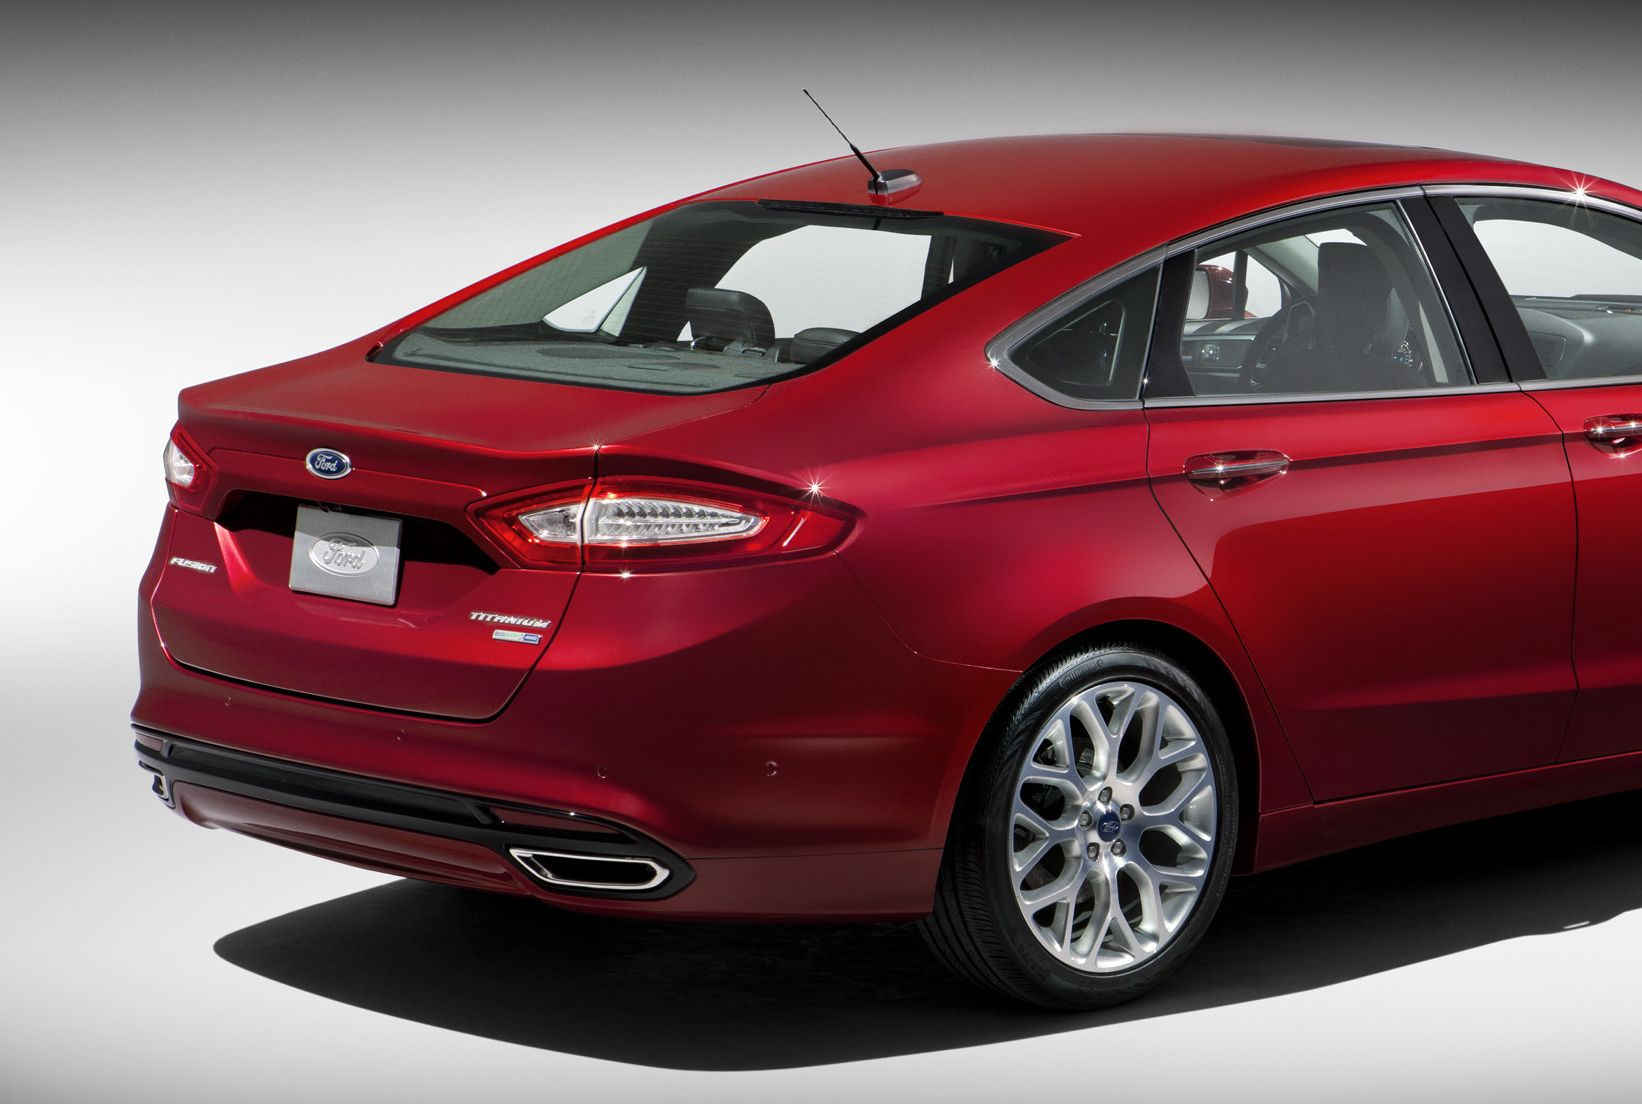 Ford Says 2013-MY Fusion Has Lower Collision Repair Costs